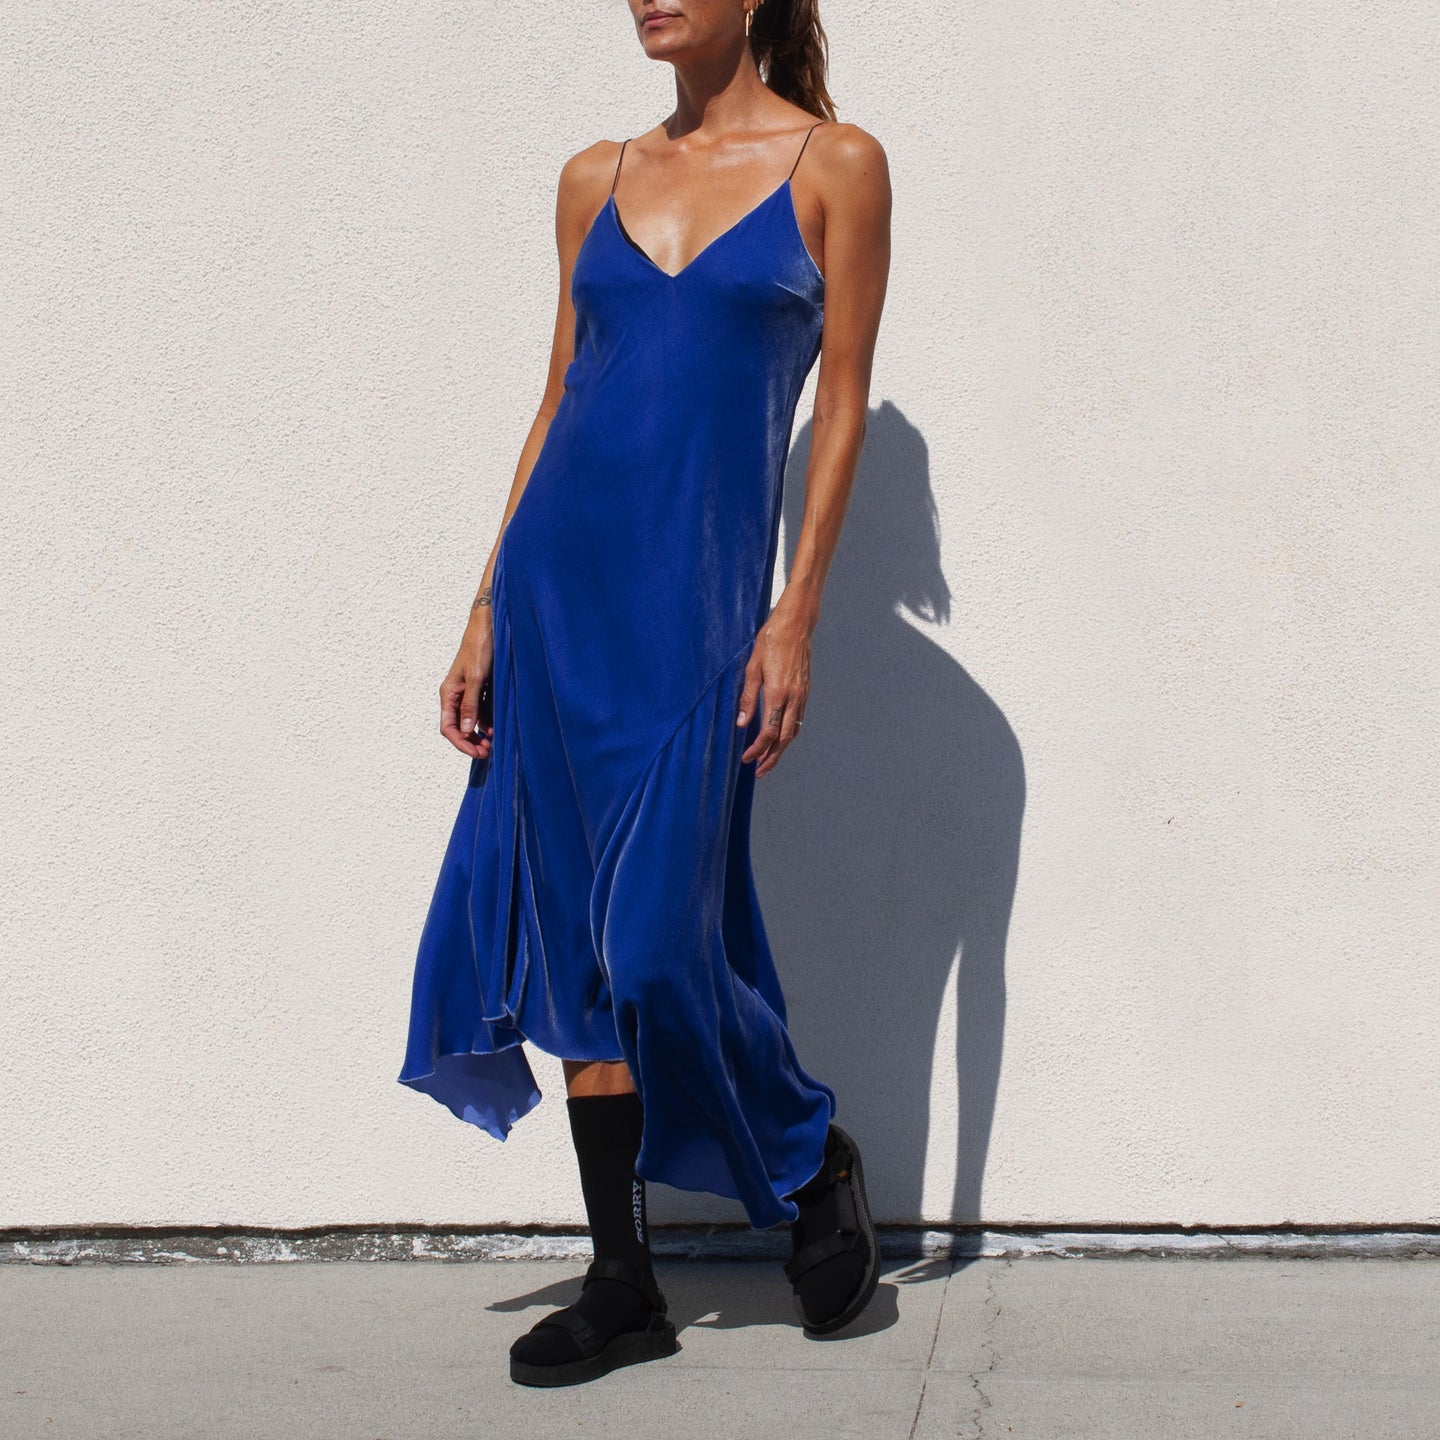 Walk of Shame - Velvet Slip Dress, angled view, available at LCD.